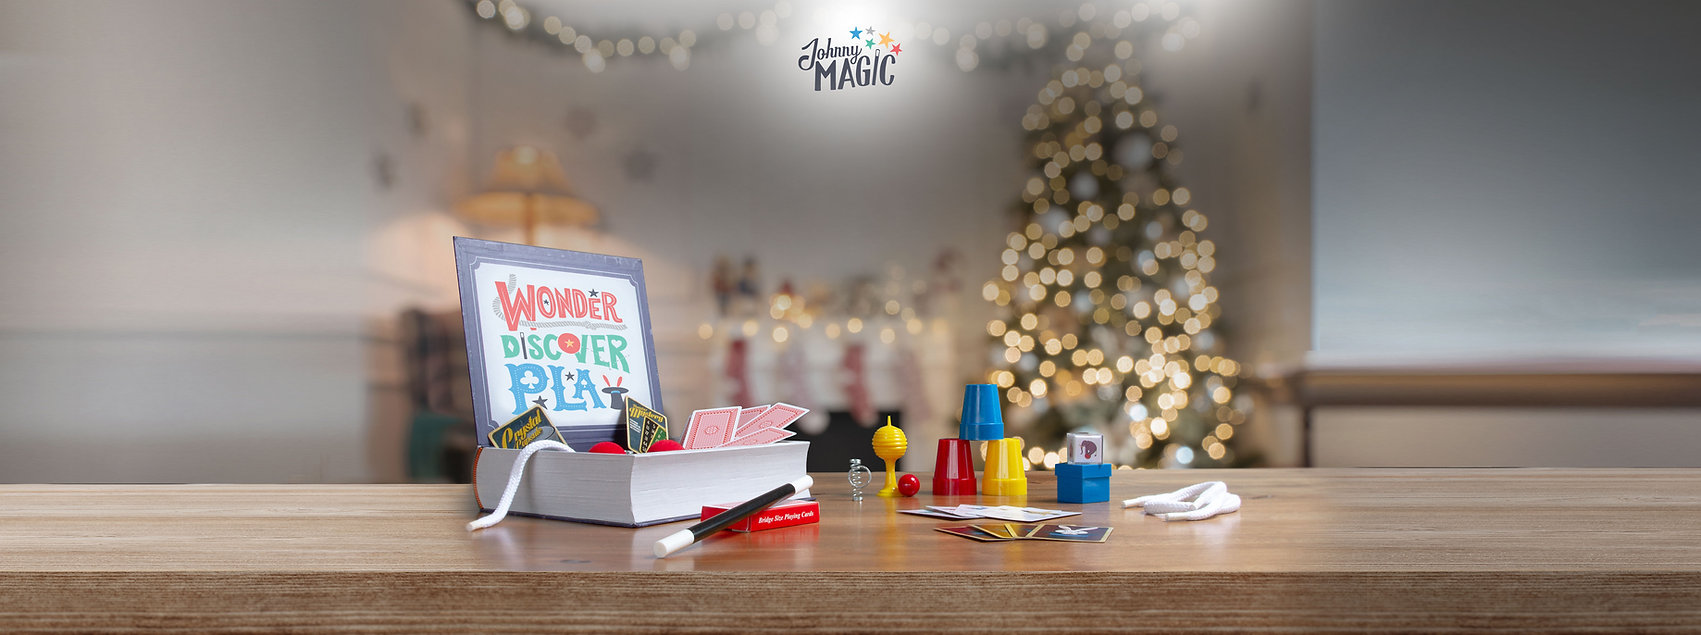 The Johnny Magic All-Star Magic Kit for Kids. Amazing Magic, Fun for everyone, made for kids.